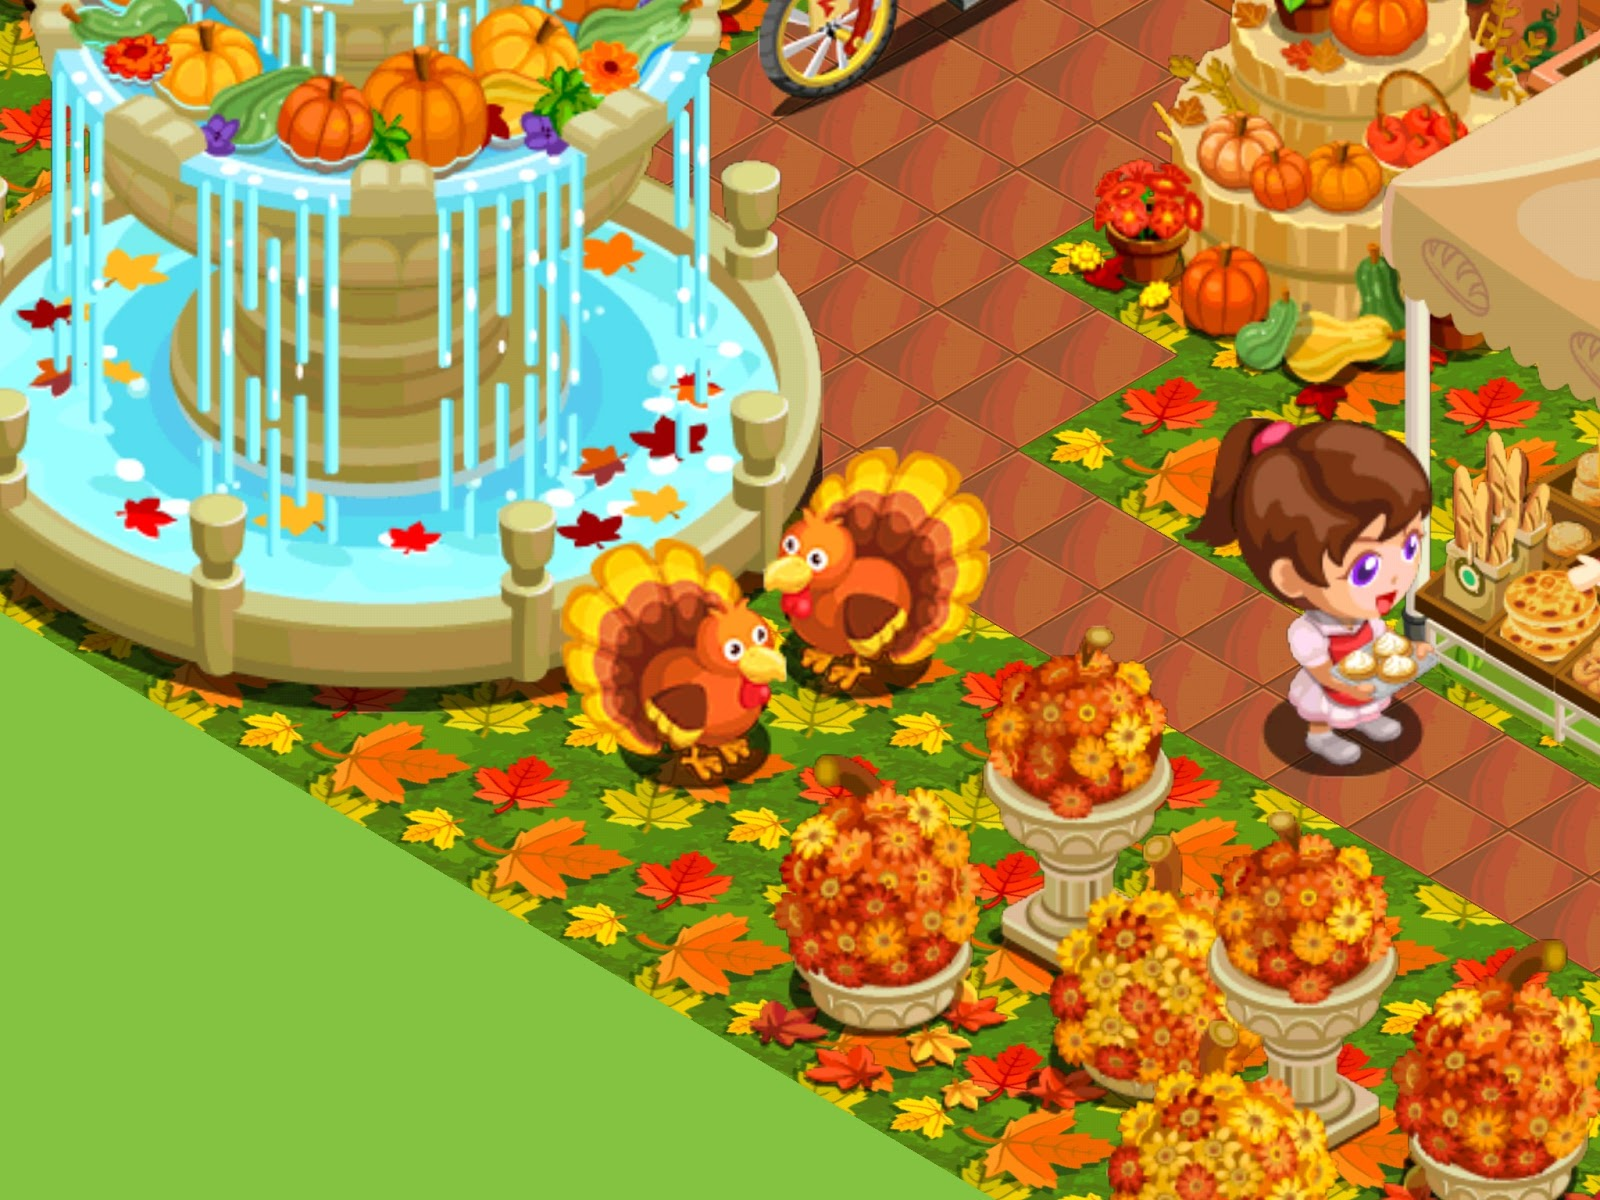 Restaurant story adventures game update 18 11 15 for Bakery story decoration ideas